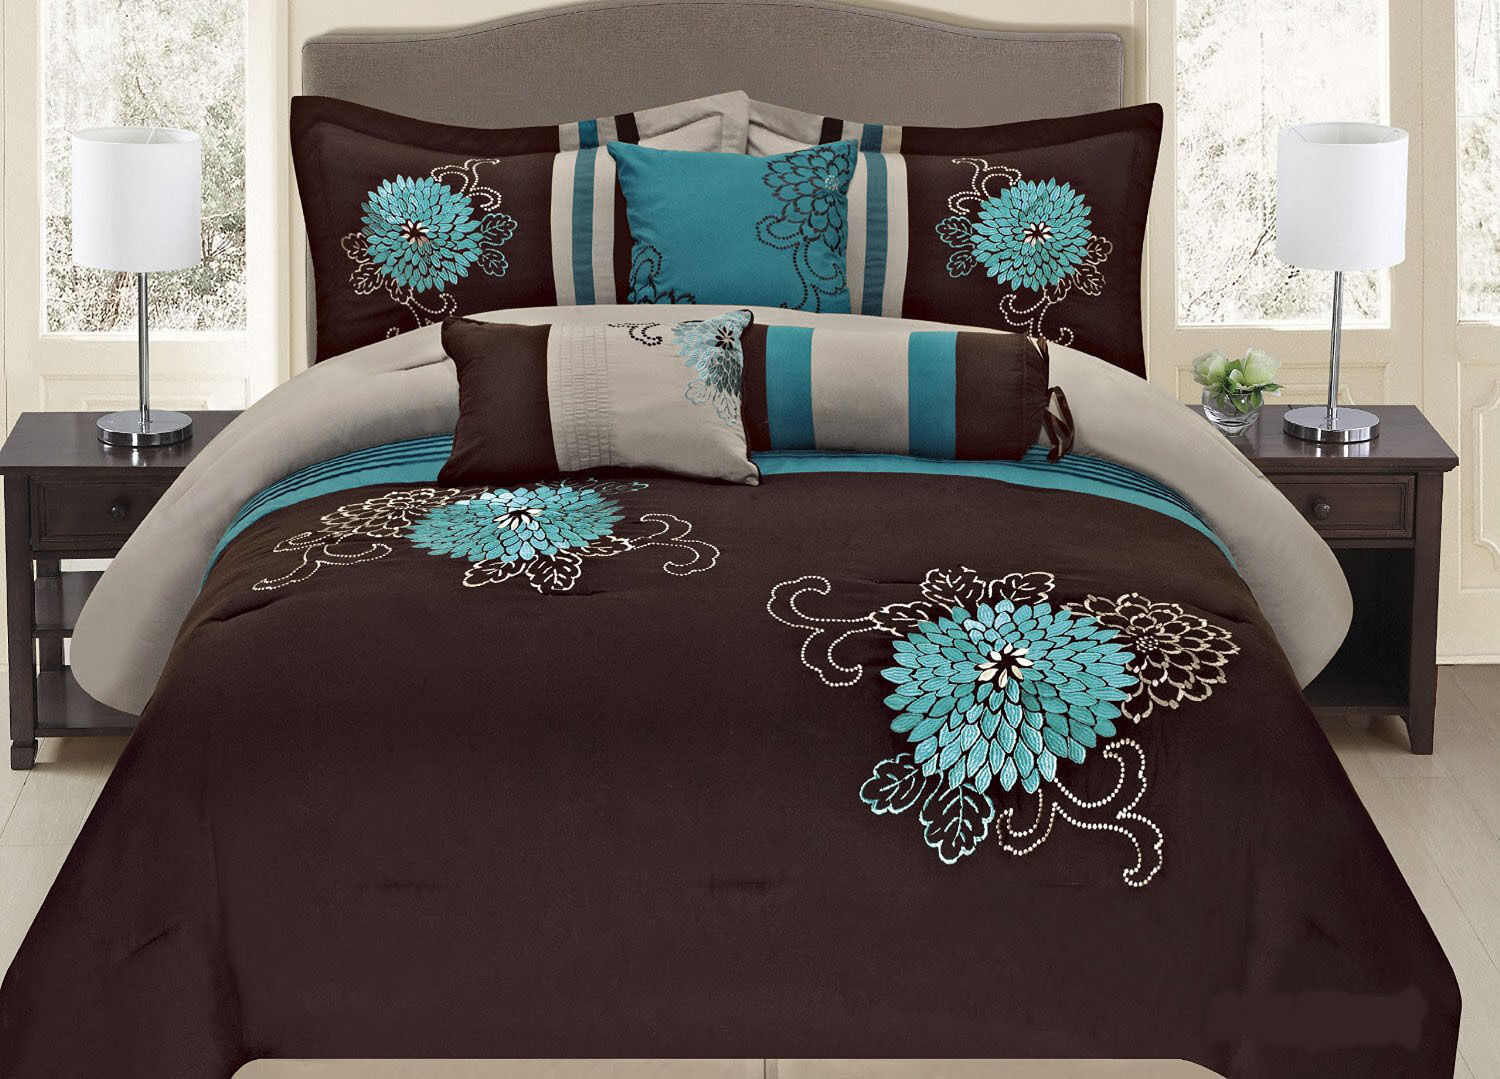 Bedding sets turquoise - Comforter Sets California King Fancy Linen 7 Pc Embroidery Bedding Brown Turquoise Comforter Set